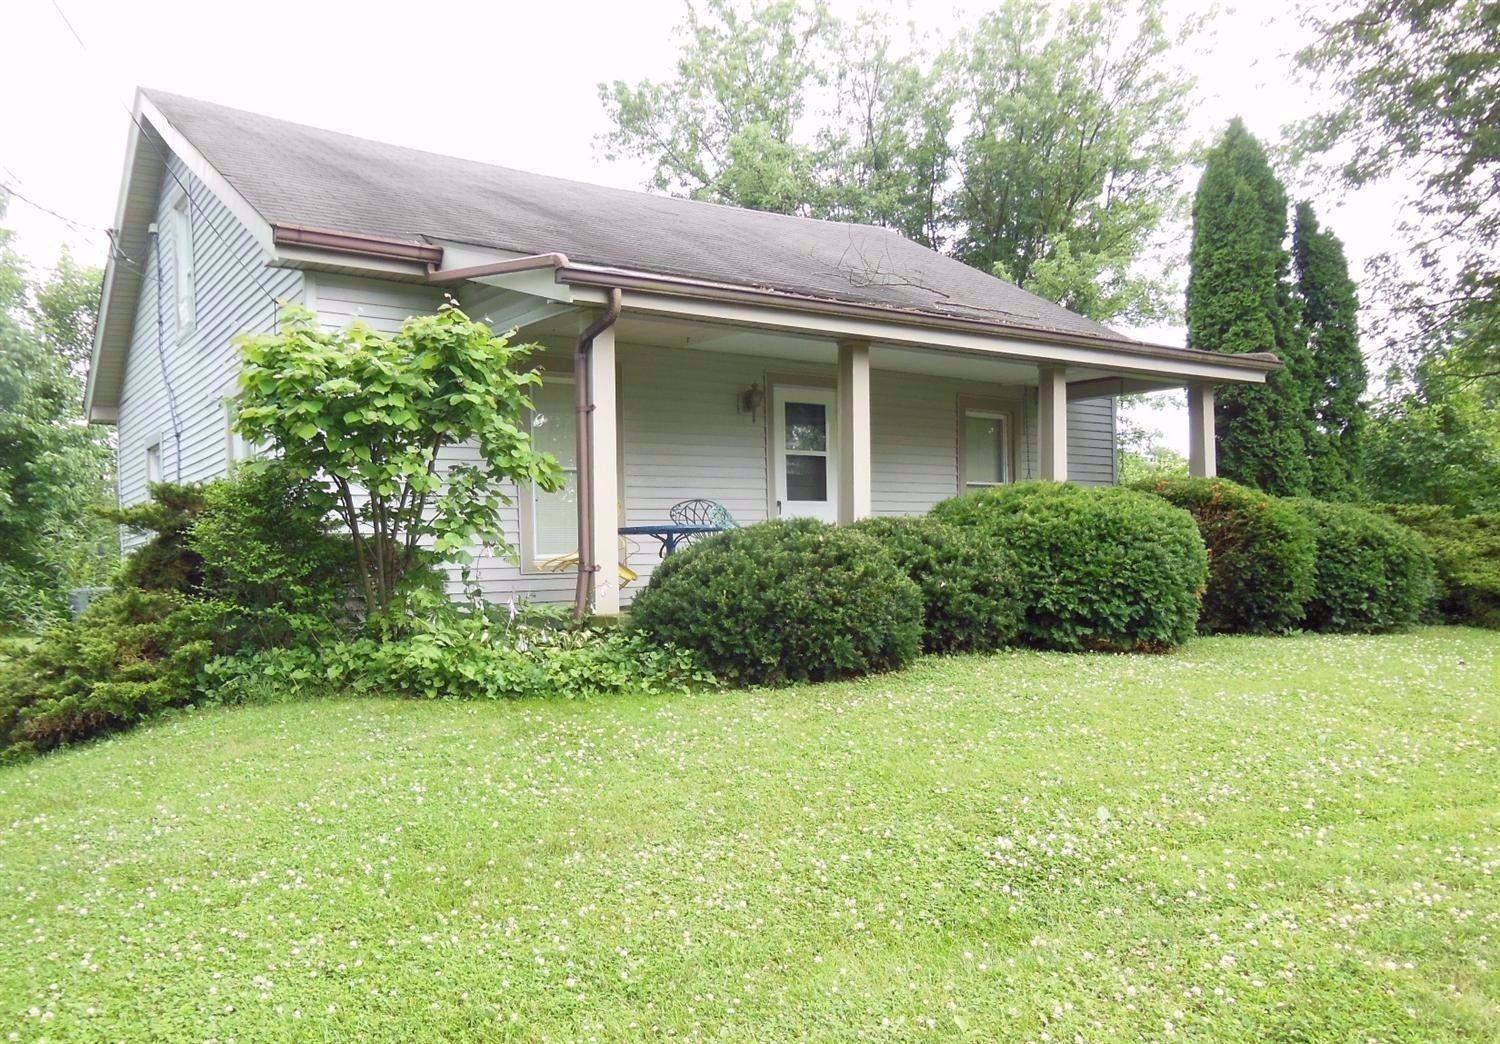 Photo 1 for 1845 EADS Rd Verona, KY 41092